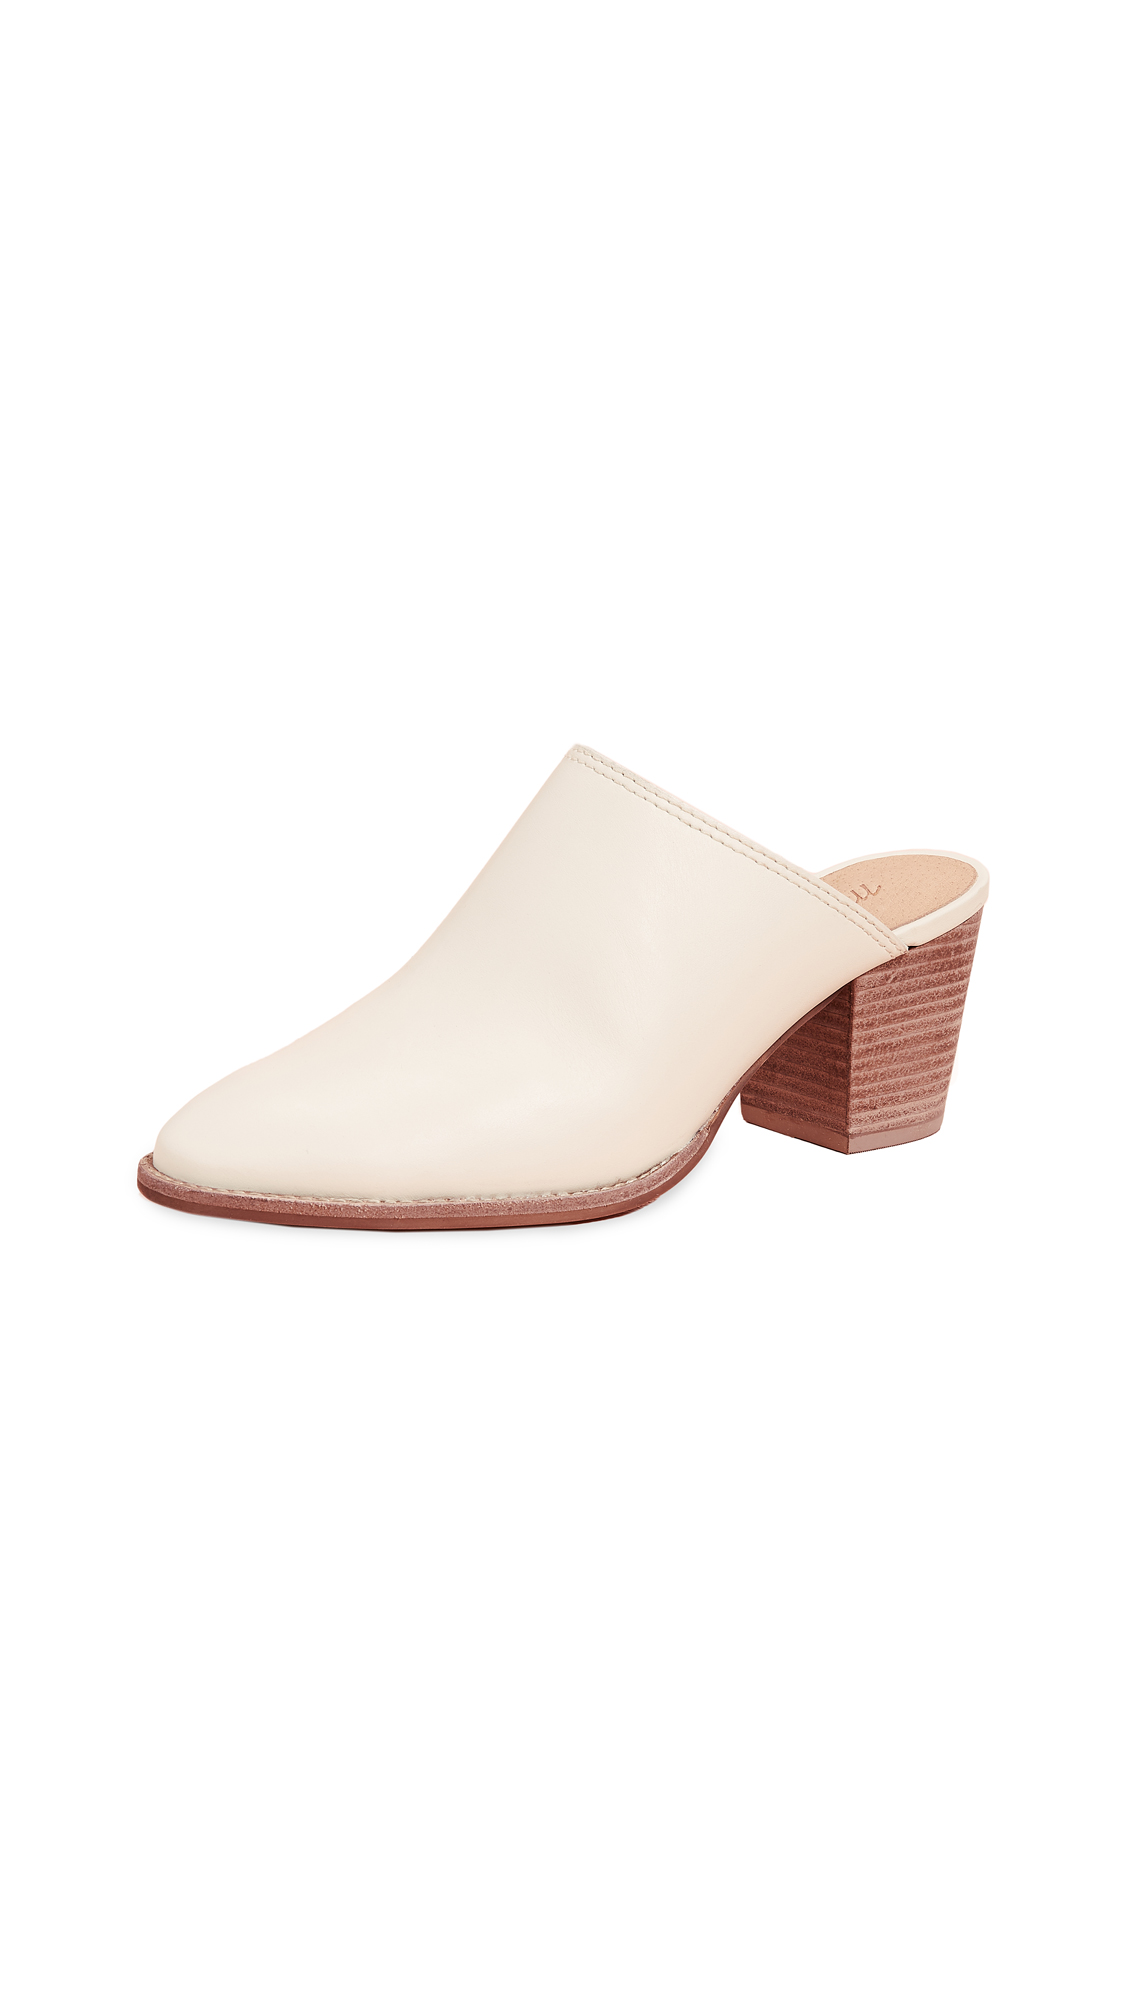 Madewell The Harper Mules - Vintage Canvas